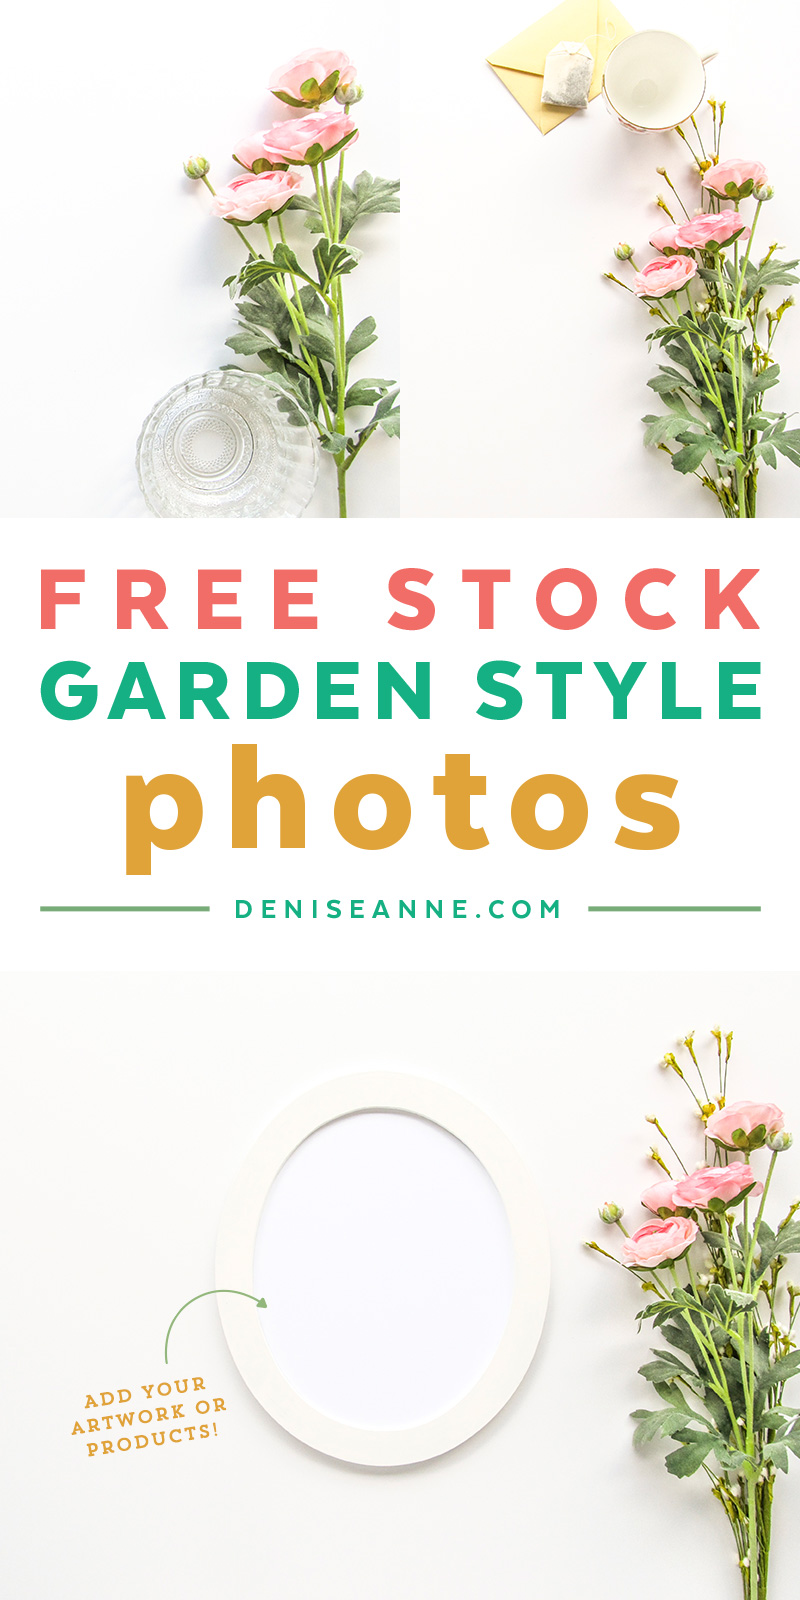 Get these styled stock photography backgrounds for promoting your products and artwork.